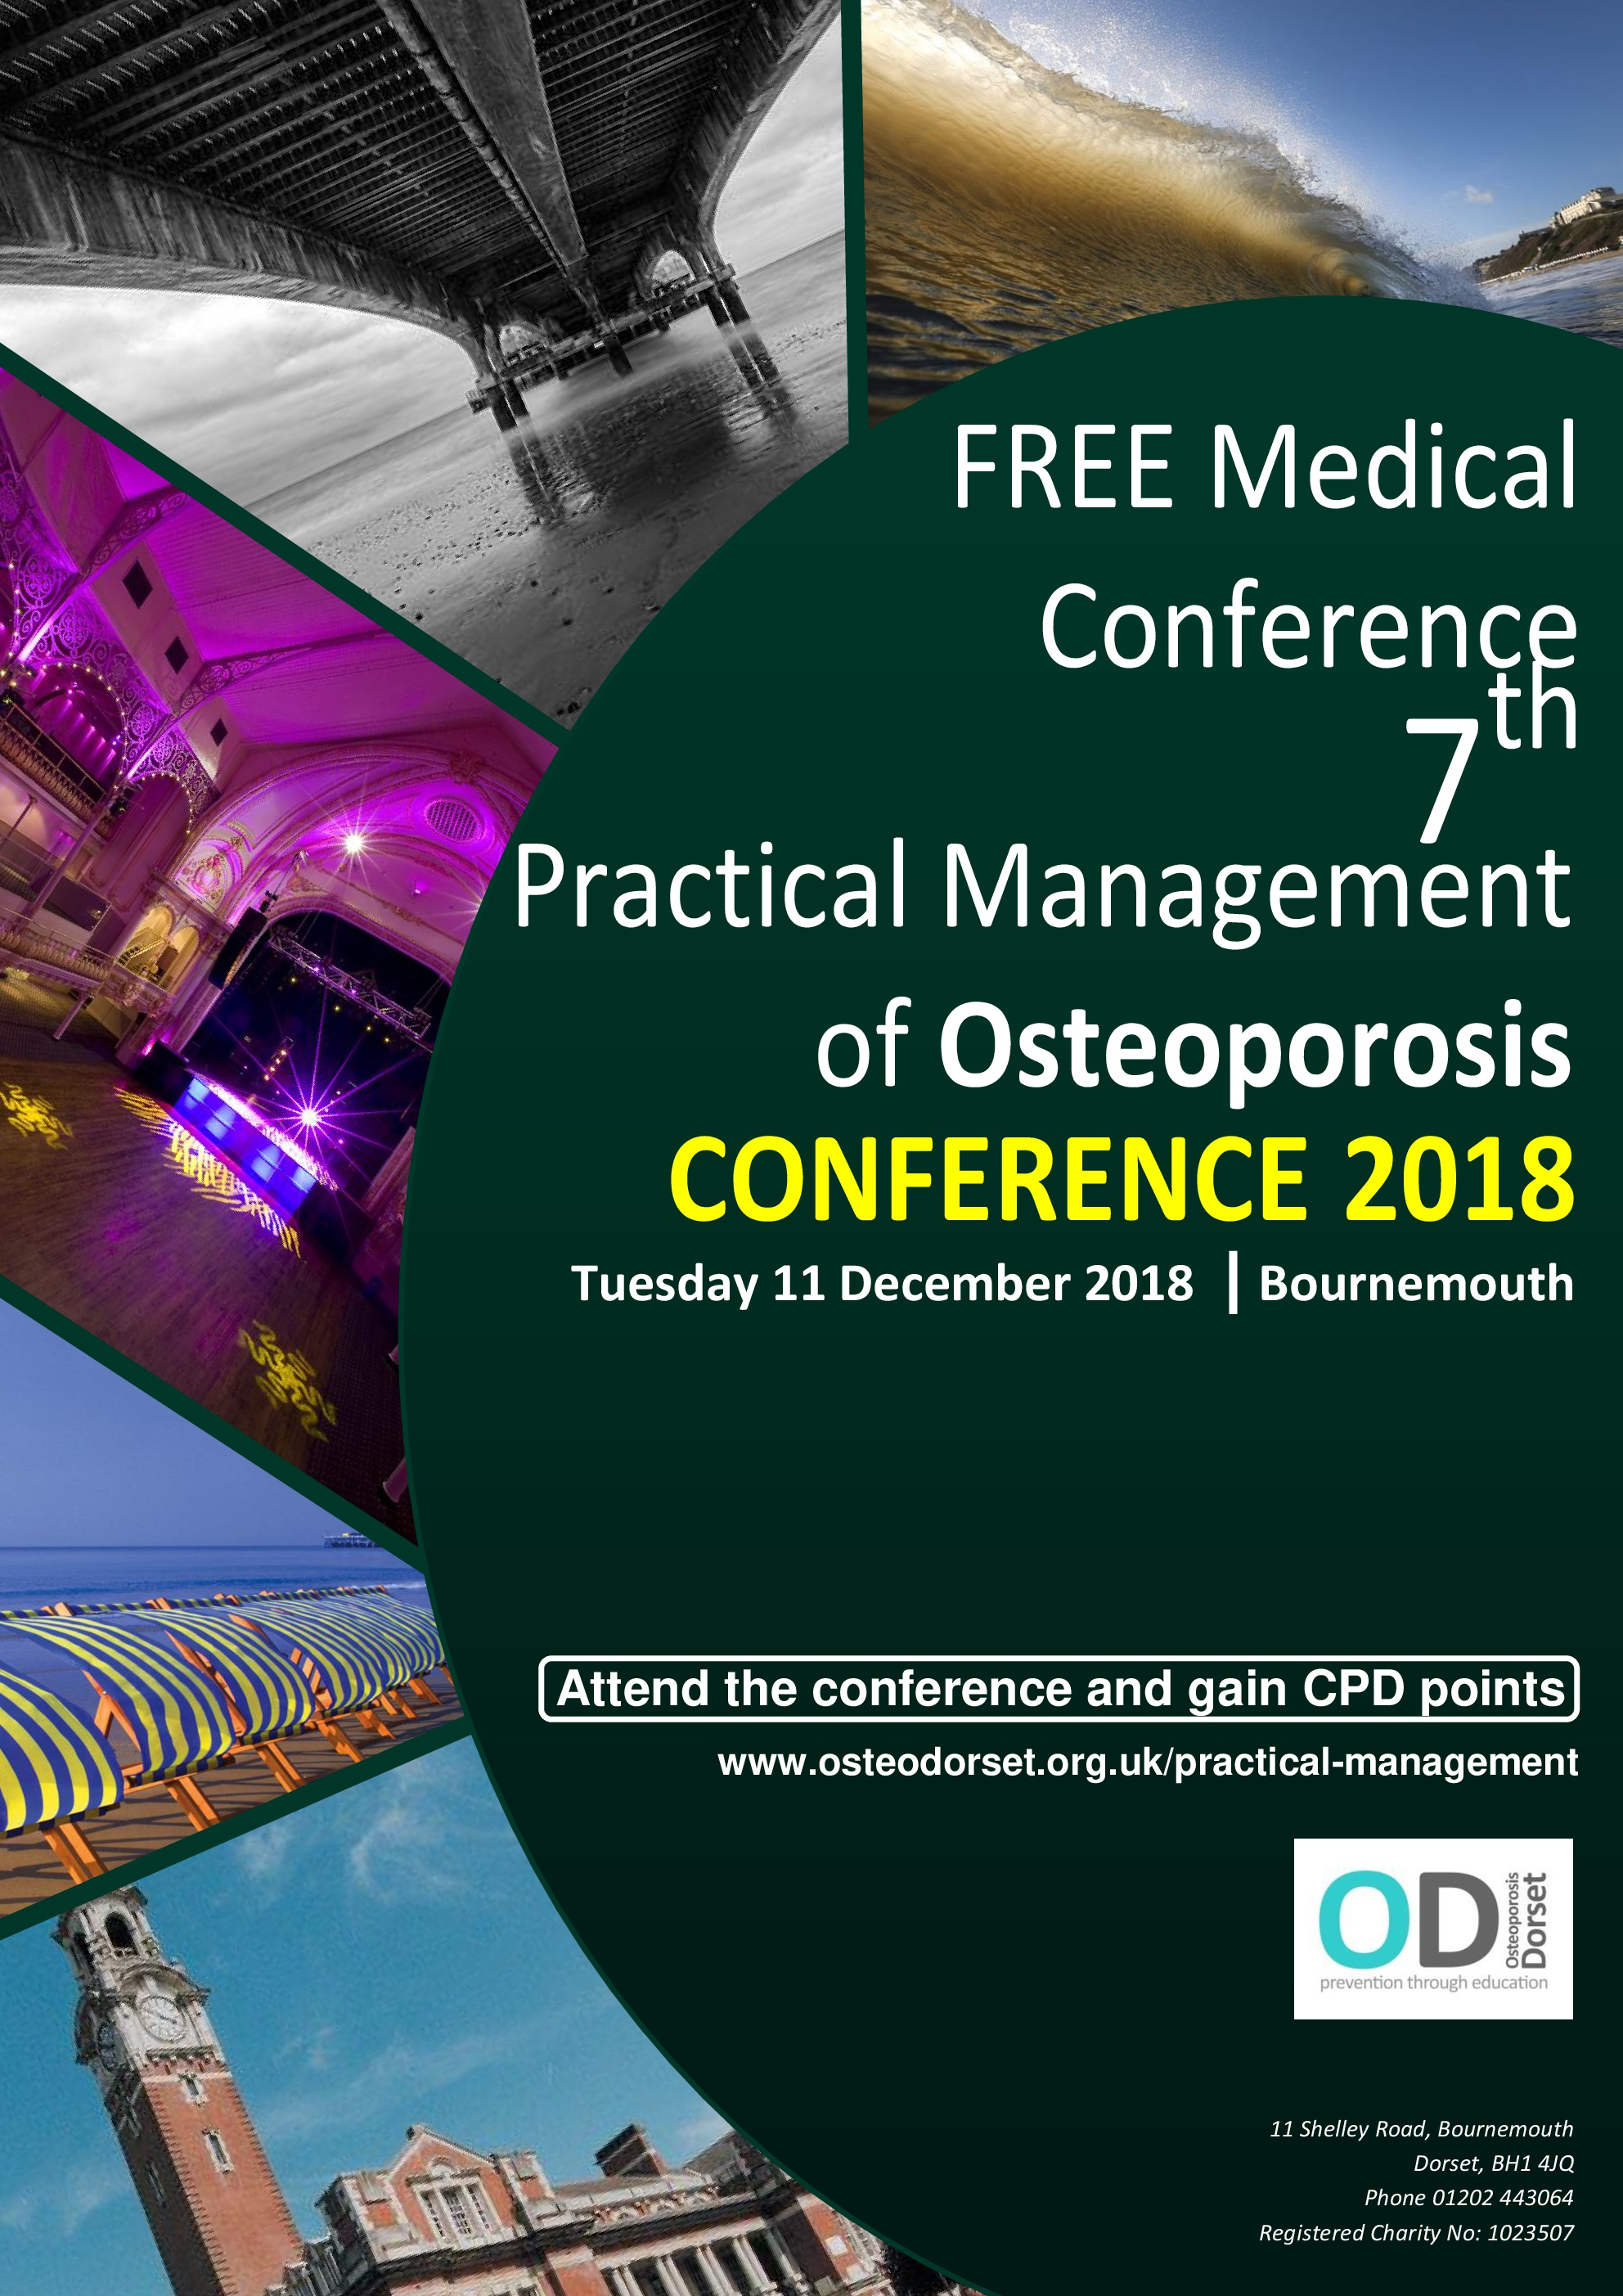 7th Practical Management of Osteoporosis Conference 2018 - Bournemouth_Page_1